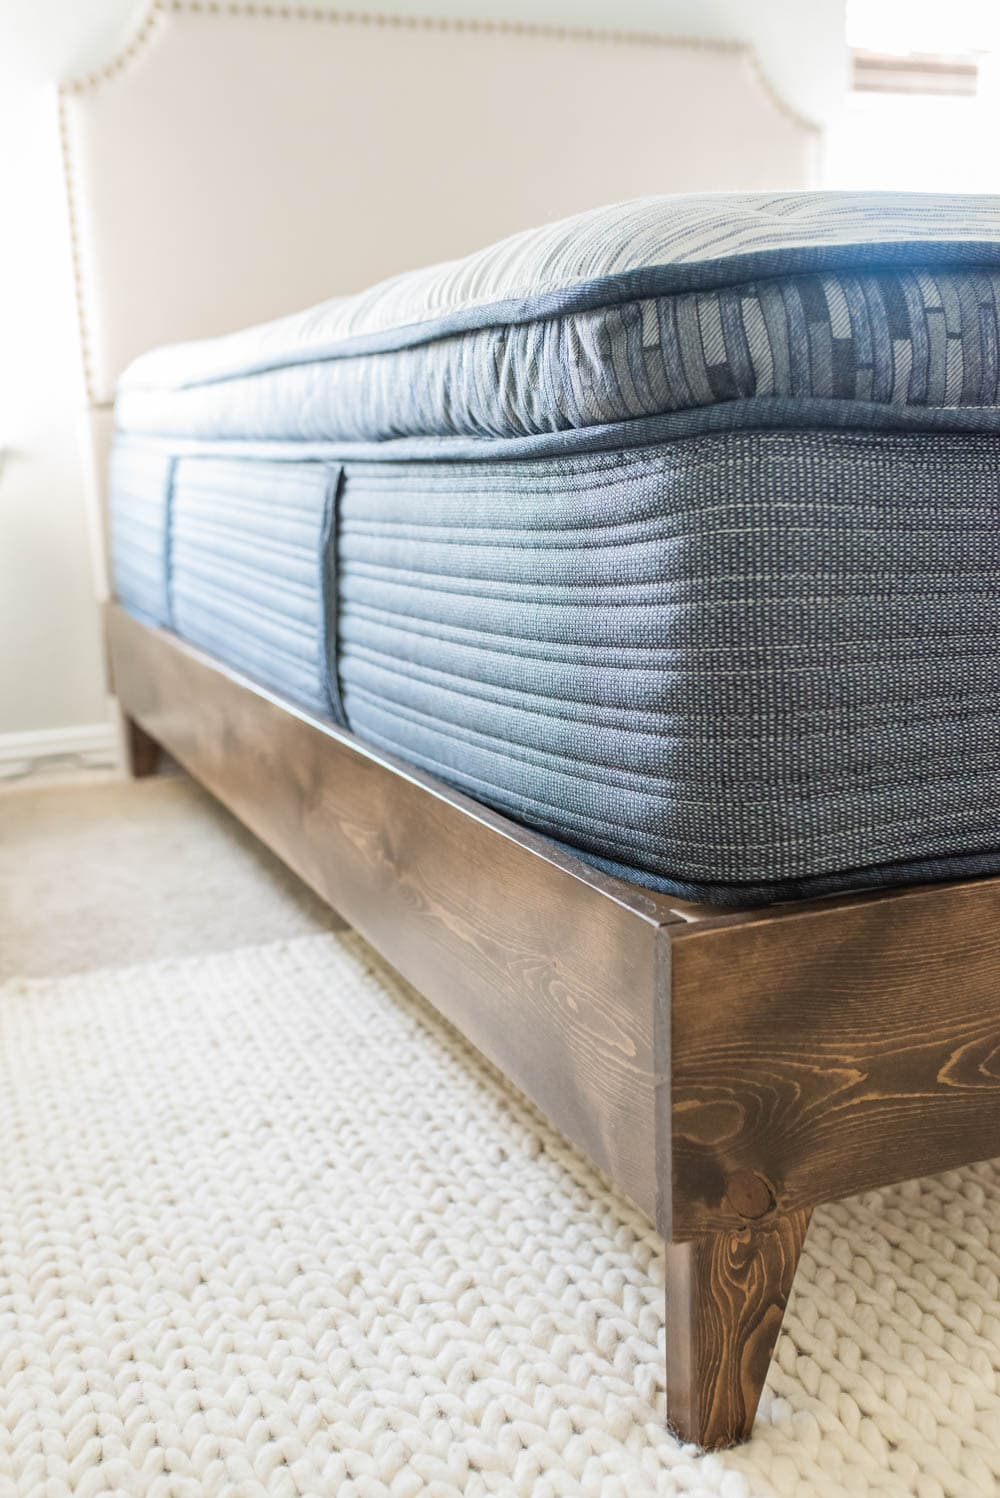 Update your bedroom with comfort in mind with Sears. #ad #sears #bedroomideas